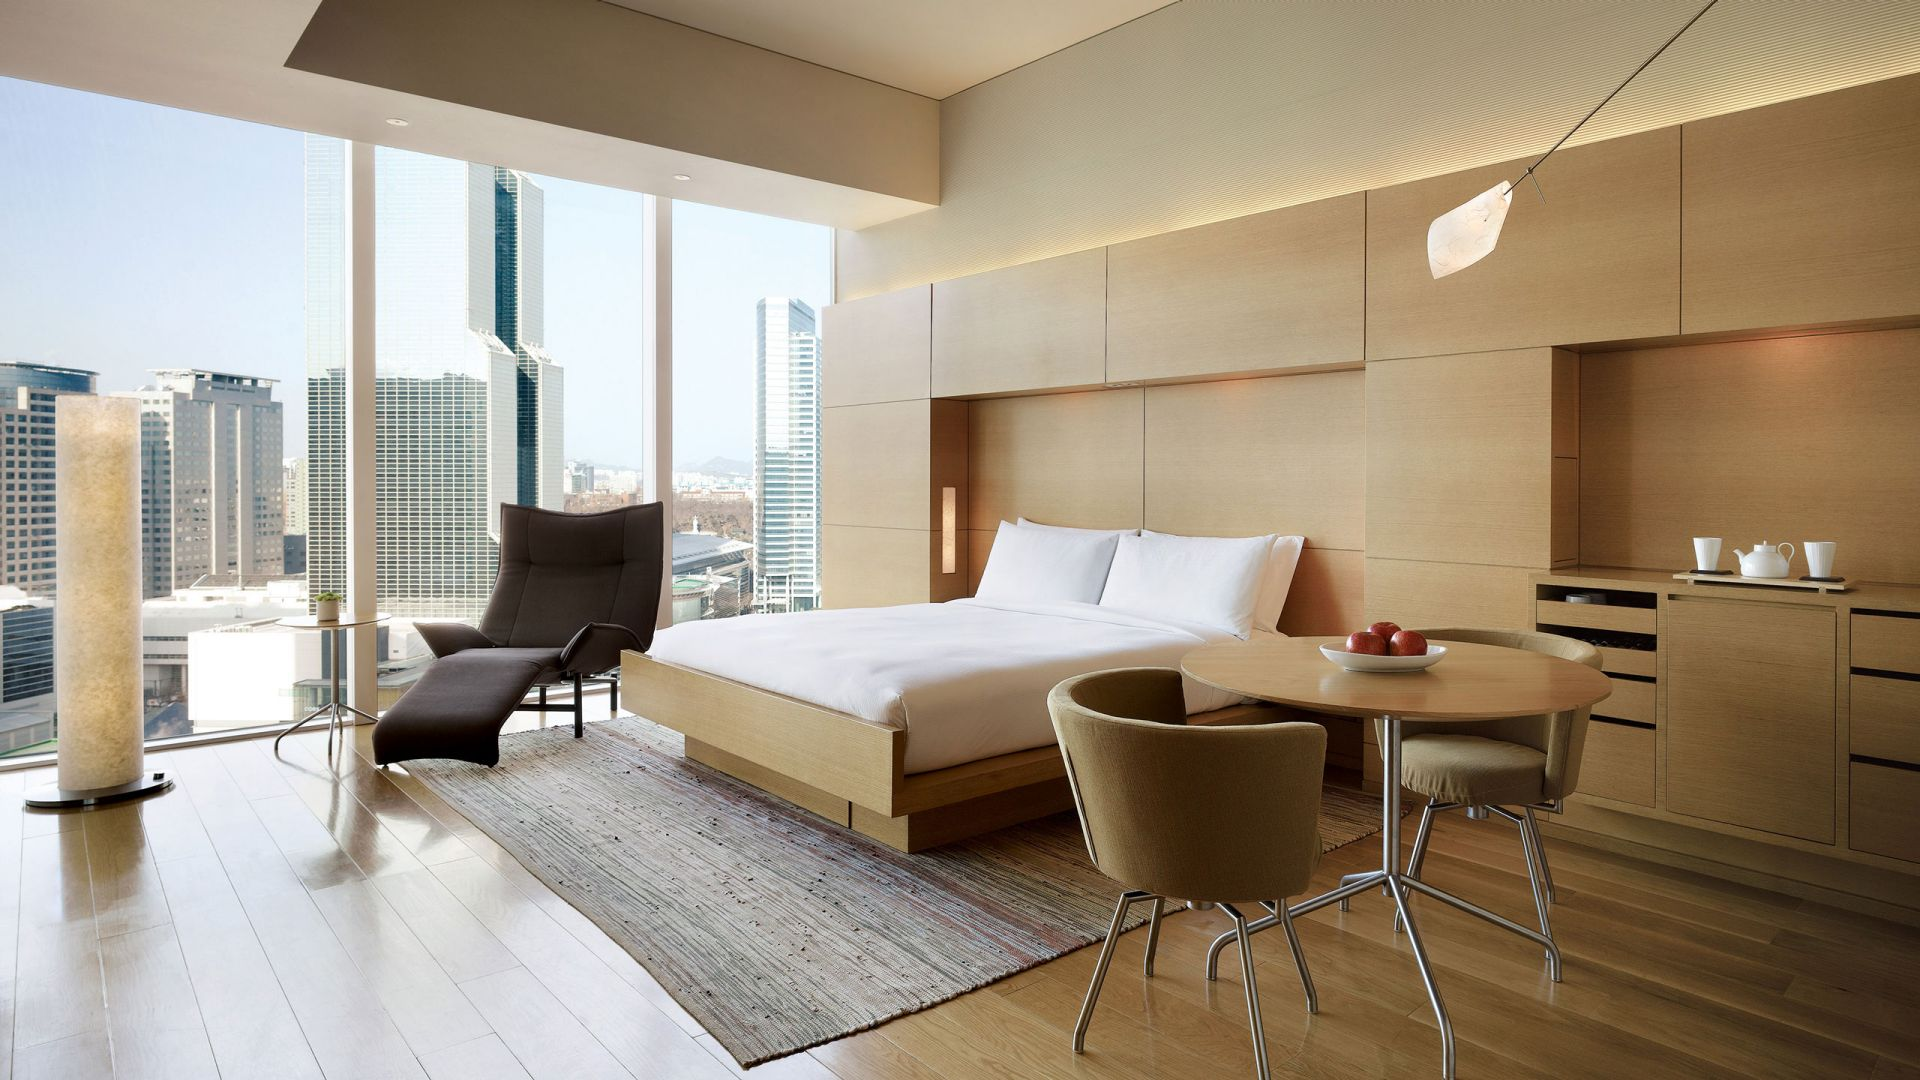 Luxury Rooms & Suites with Panoramic Views of the city of Gangnam, Seoul